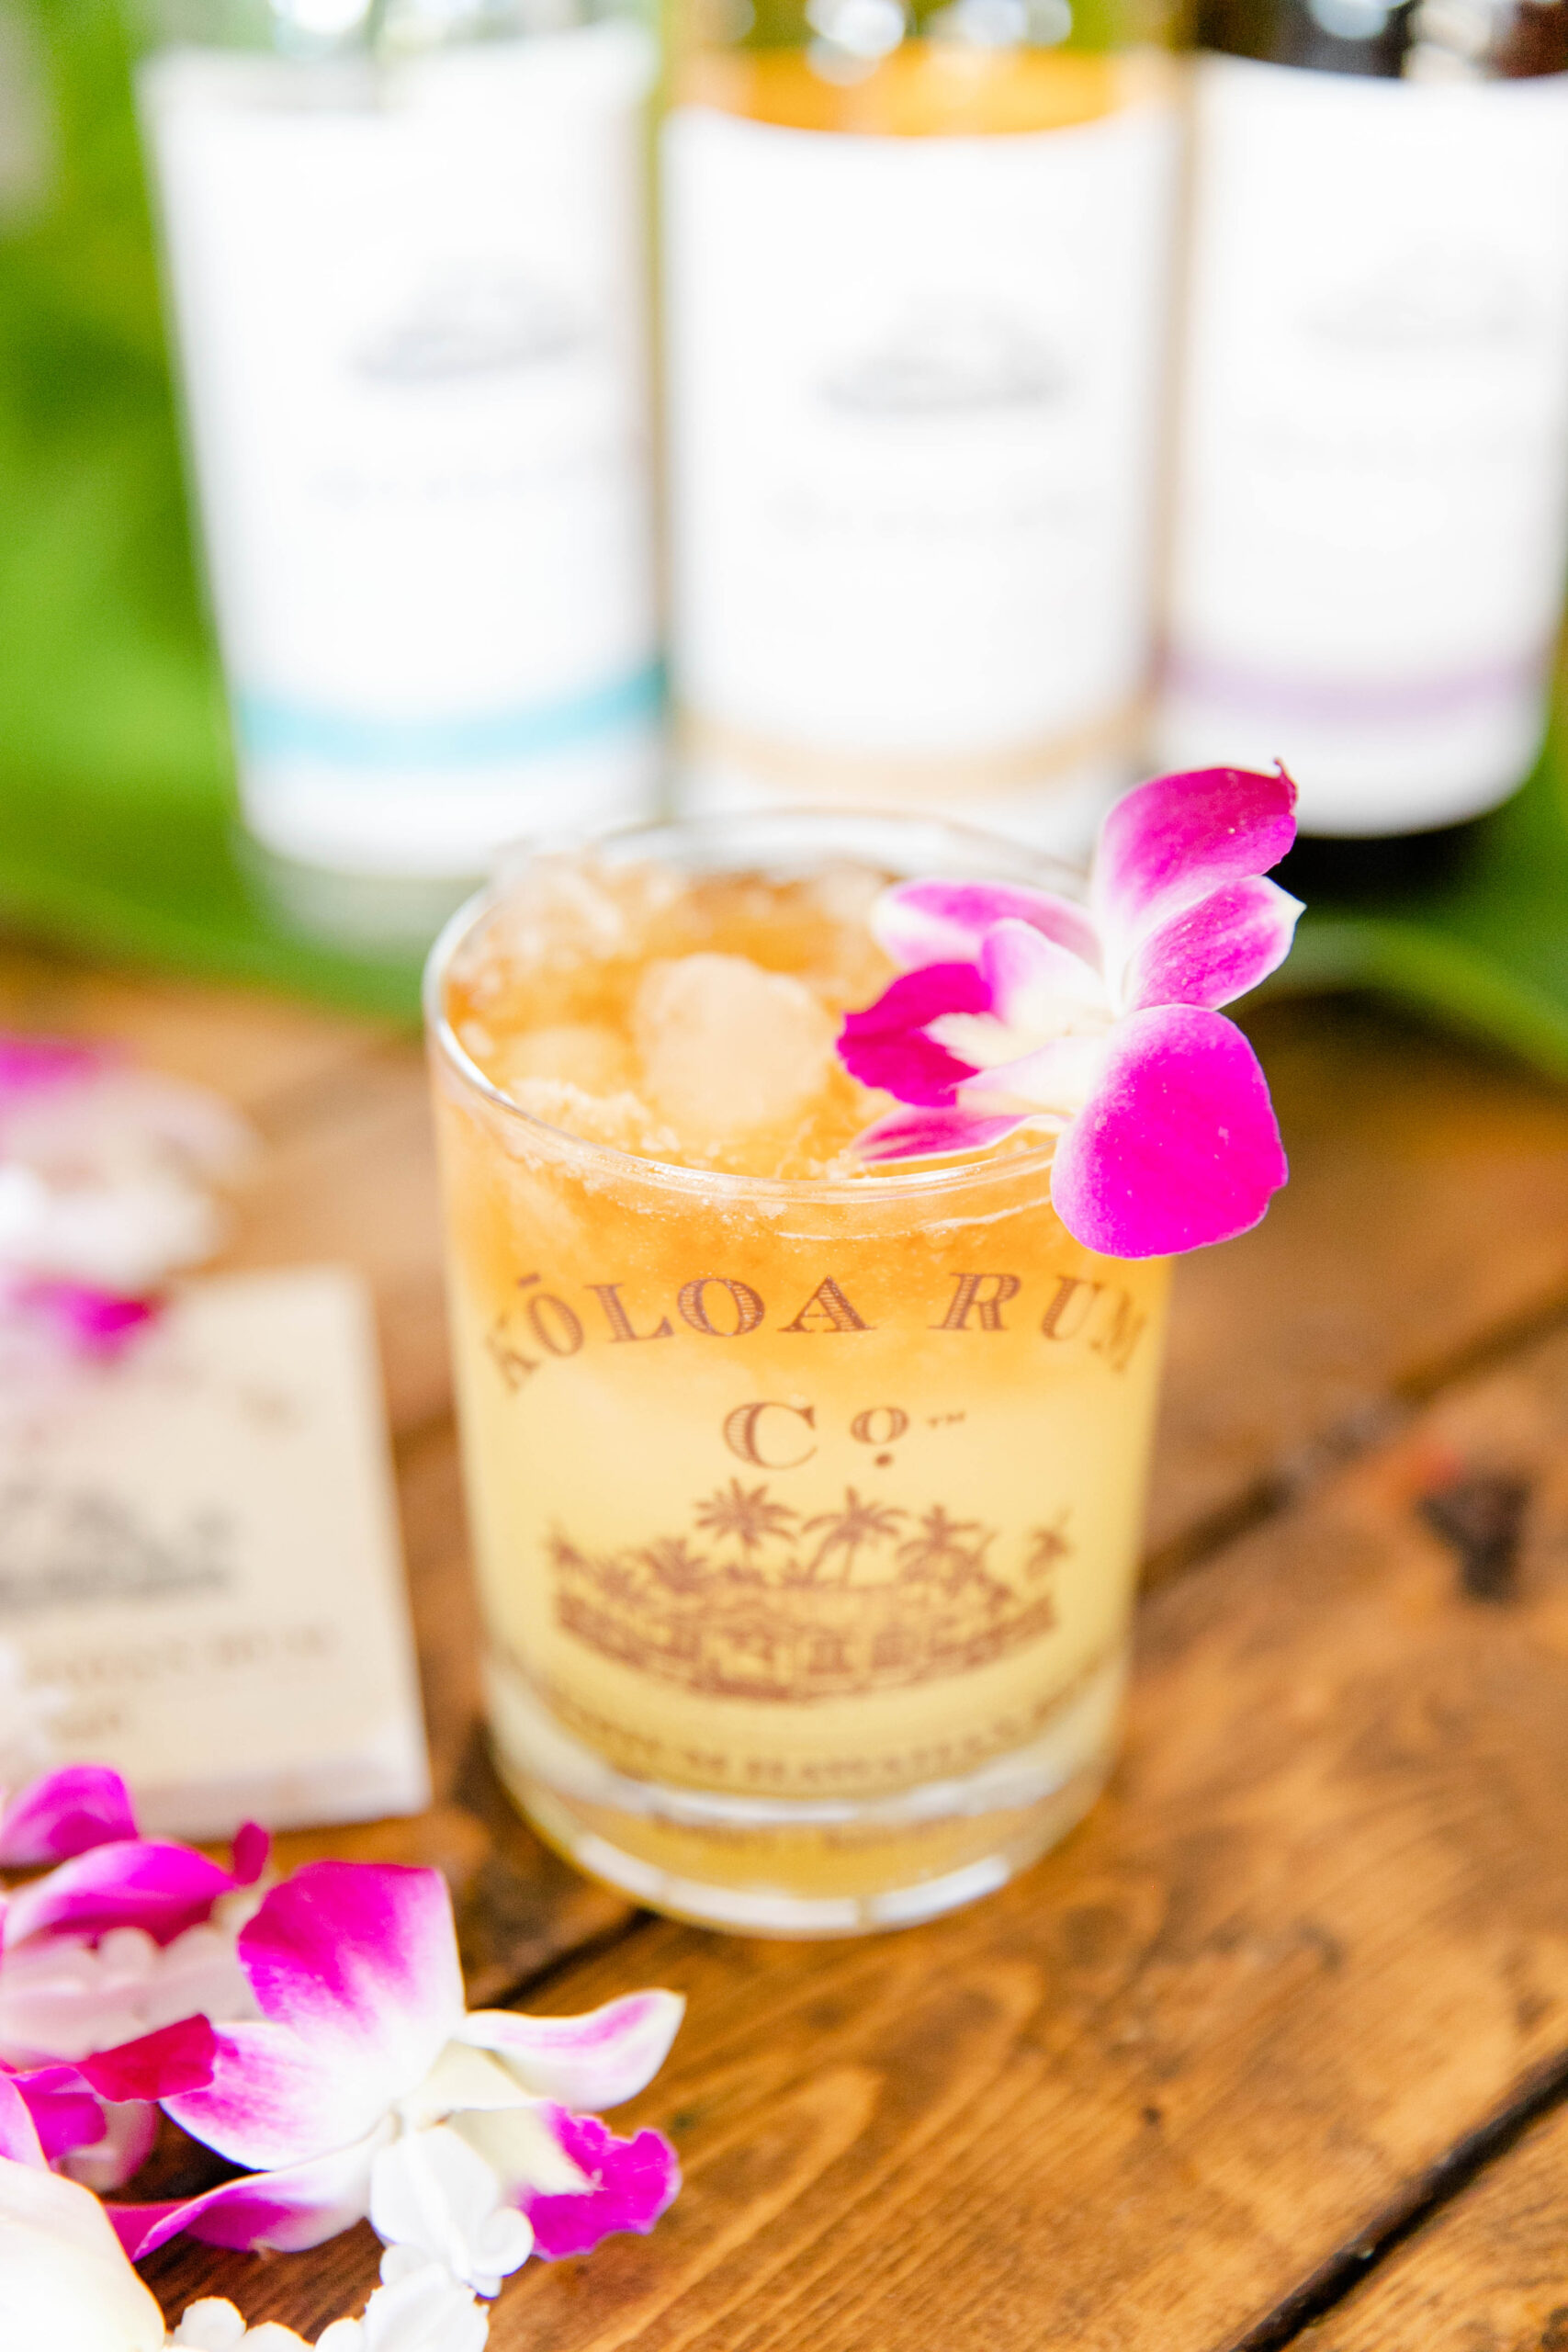 Koloa Tai Mai Tai - Looking for a delicious twist on a classic mai tai recipe? Look no further than the Koloa Tai featuring Koloa Rum! | Mai Tai Recipe - Hawaiian Mai Tai - Strong Mai Tai Recipe - Koloa Rum - Kauai Rum